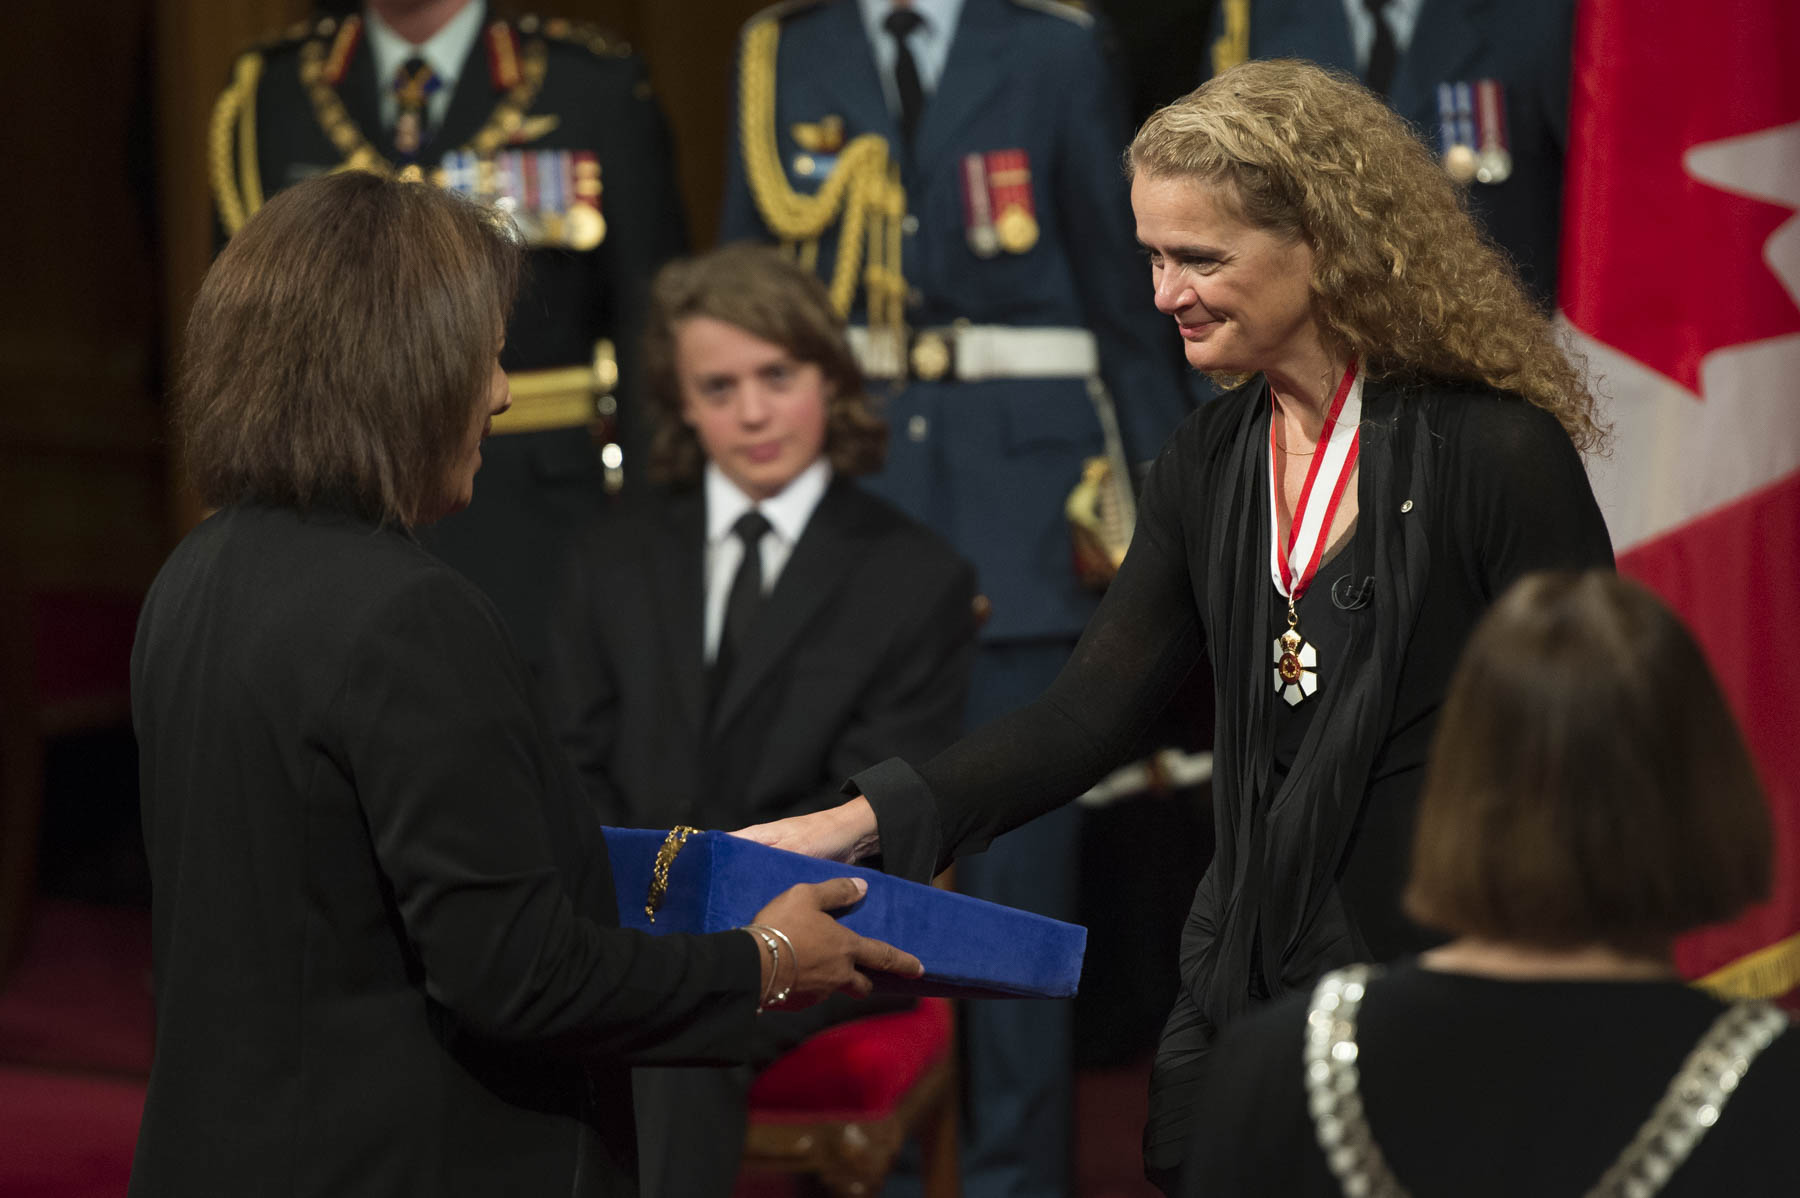 During the ceremony, Her Excellency was presented with four collars: Chancellor of the Order of Canada, Chancellor of the Order of Military Merit, Chancellor of the Order of Merit of the Police Forces, and head of the Canadian Heraldic Authority.